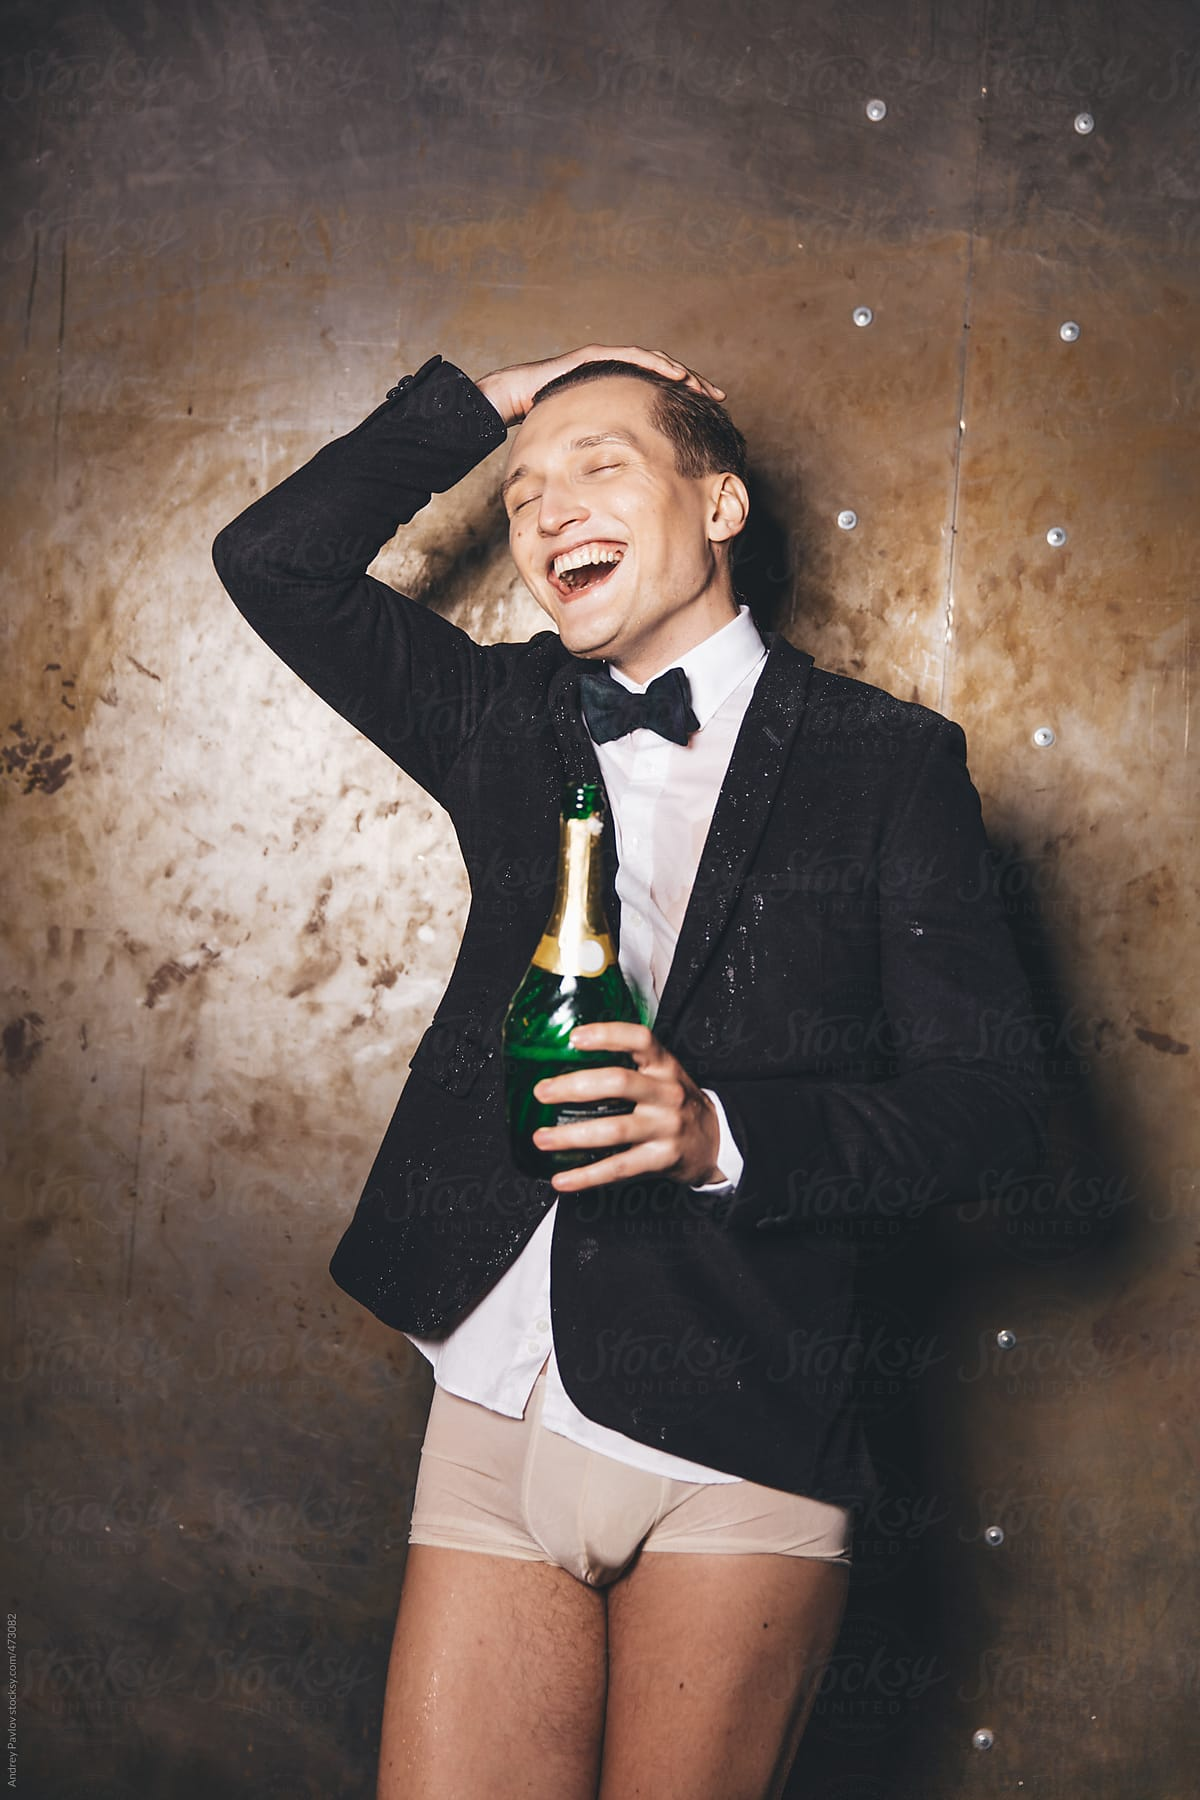 Half-dressed men in a suit holding bottle of champagne and laugh by Andrey  Pavlov